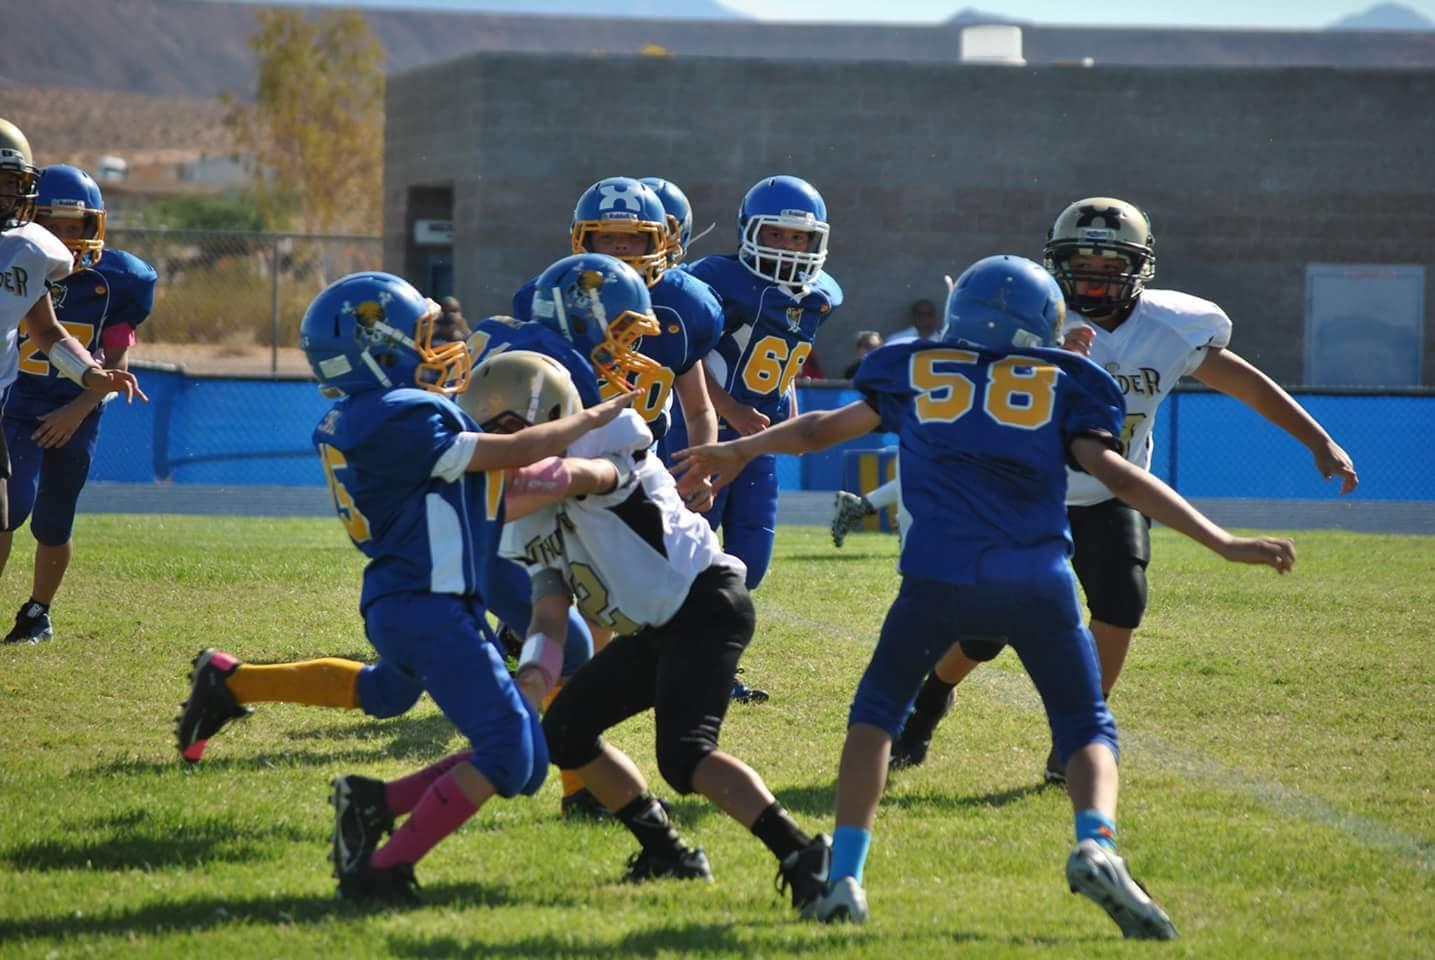 Luray midget league football registration — img 6